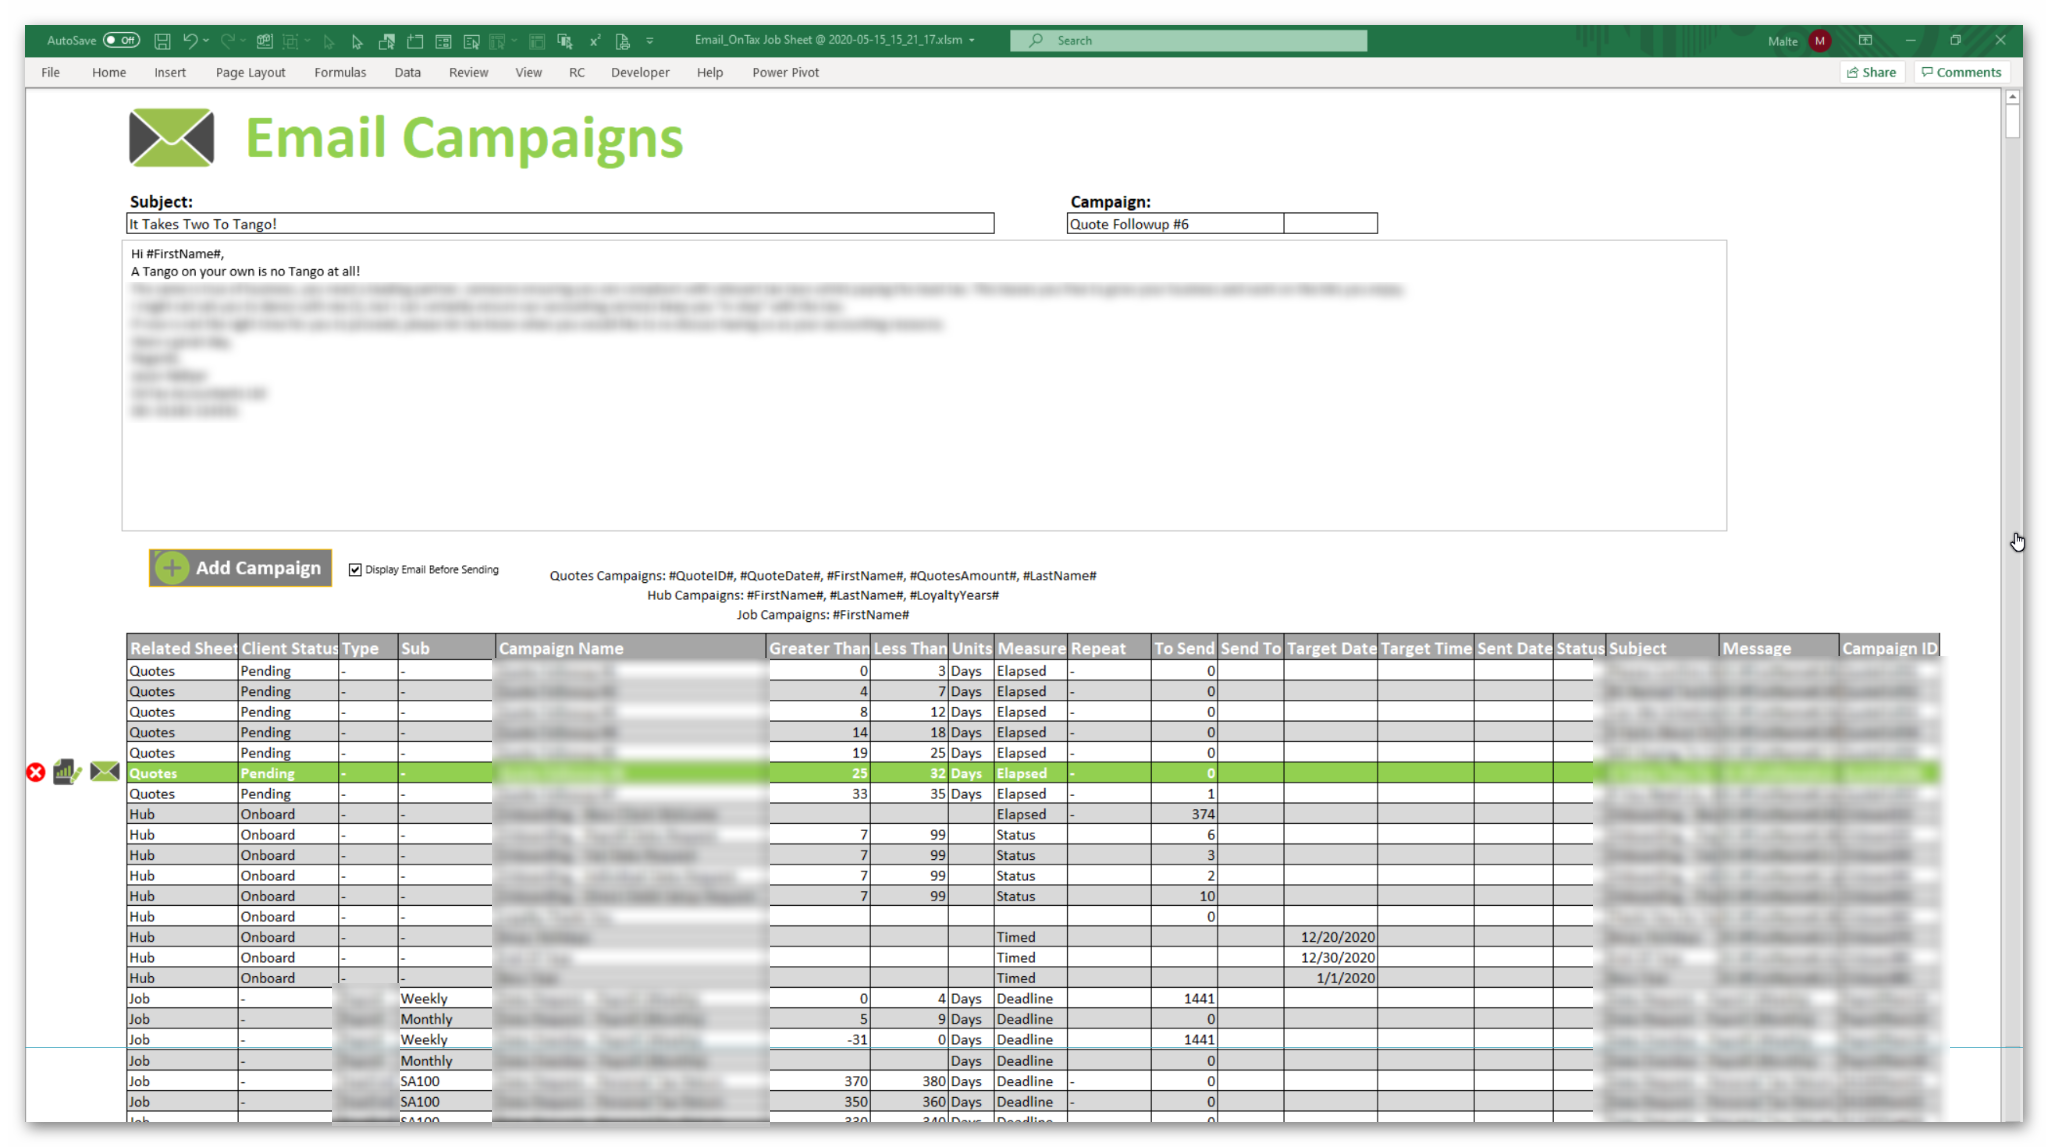 Email Campaign Manager